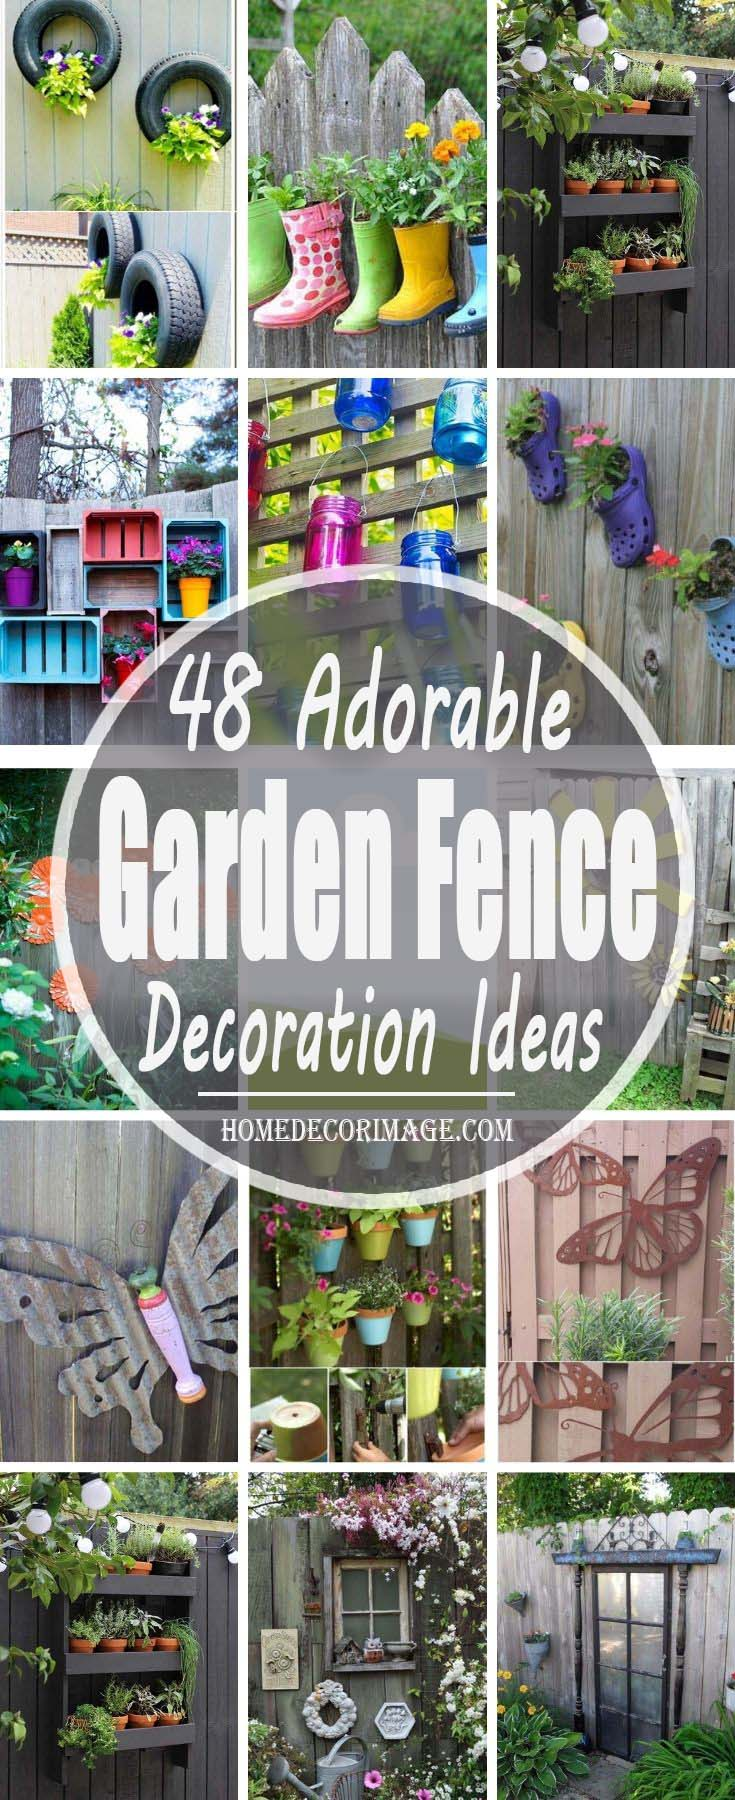 48 Adorable Garden Fence Decoration Ideas To Make Your Yard More Colorful #gardenfencedecoration #homedecorimage